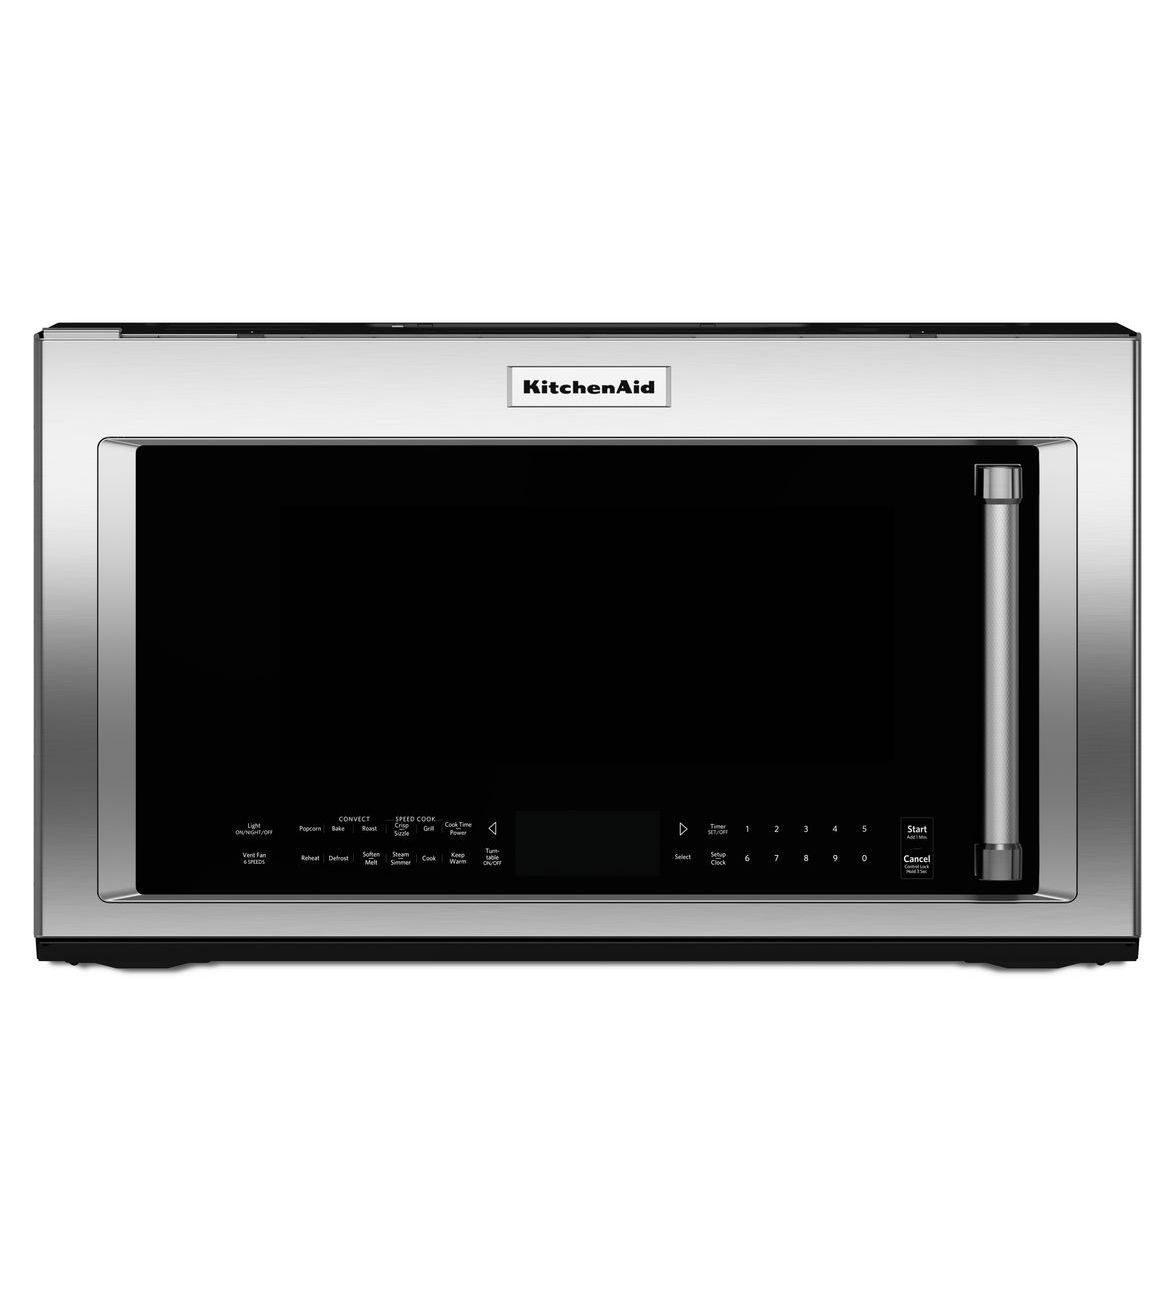 Stainless steel 1200watt convection microwave with high